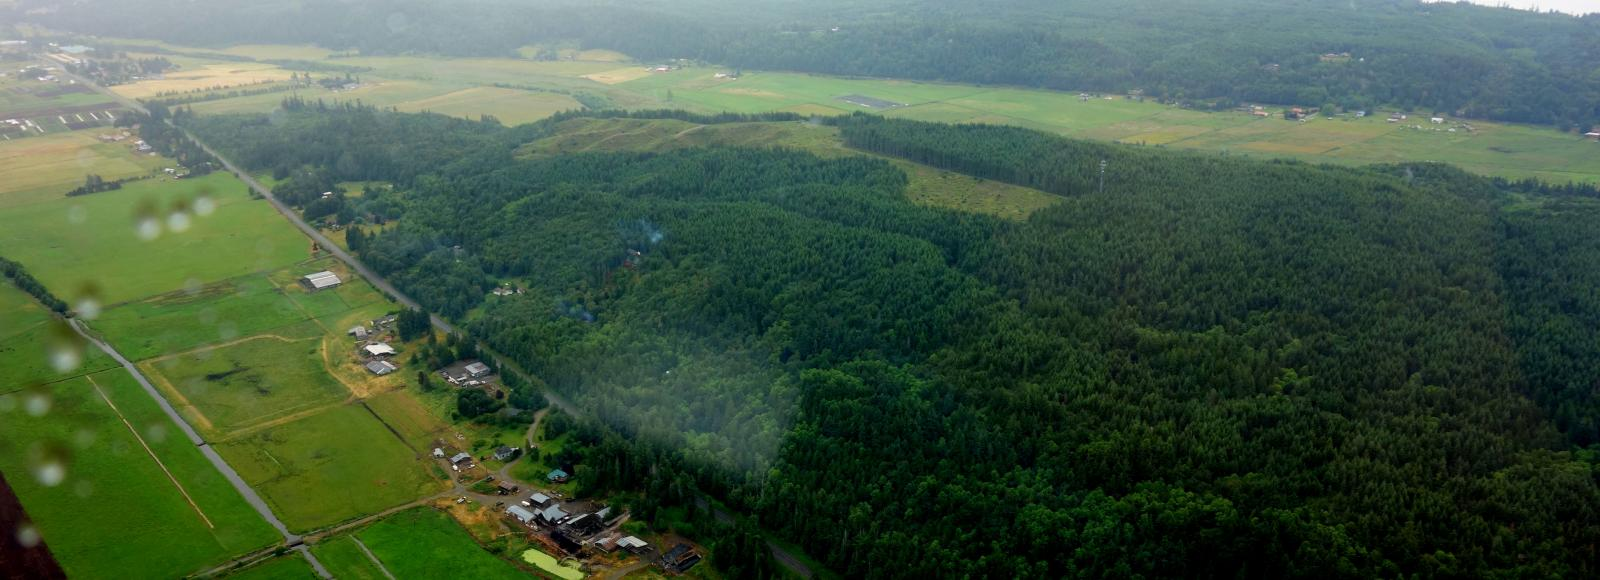 aerial view of chimacum ridge and farms - green